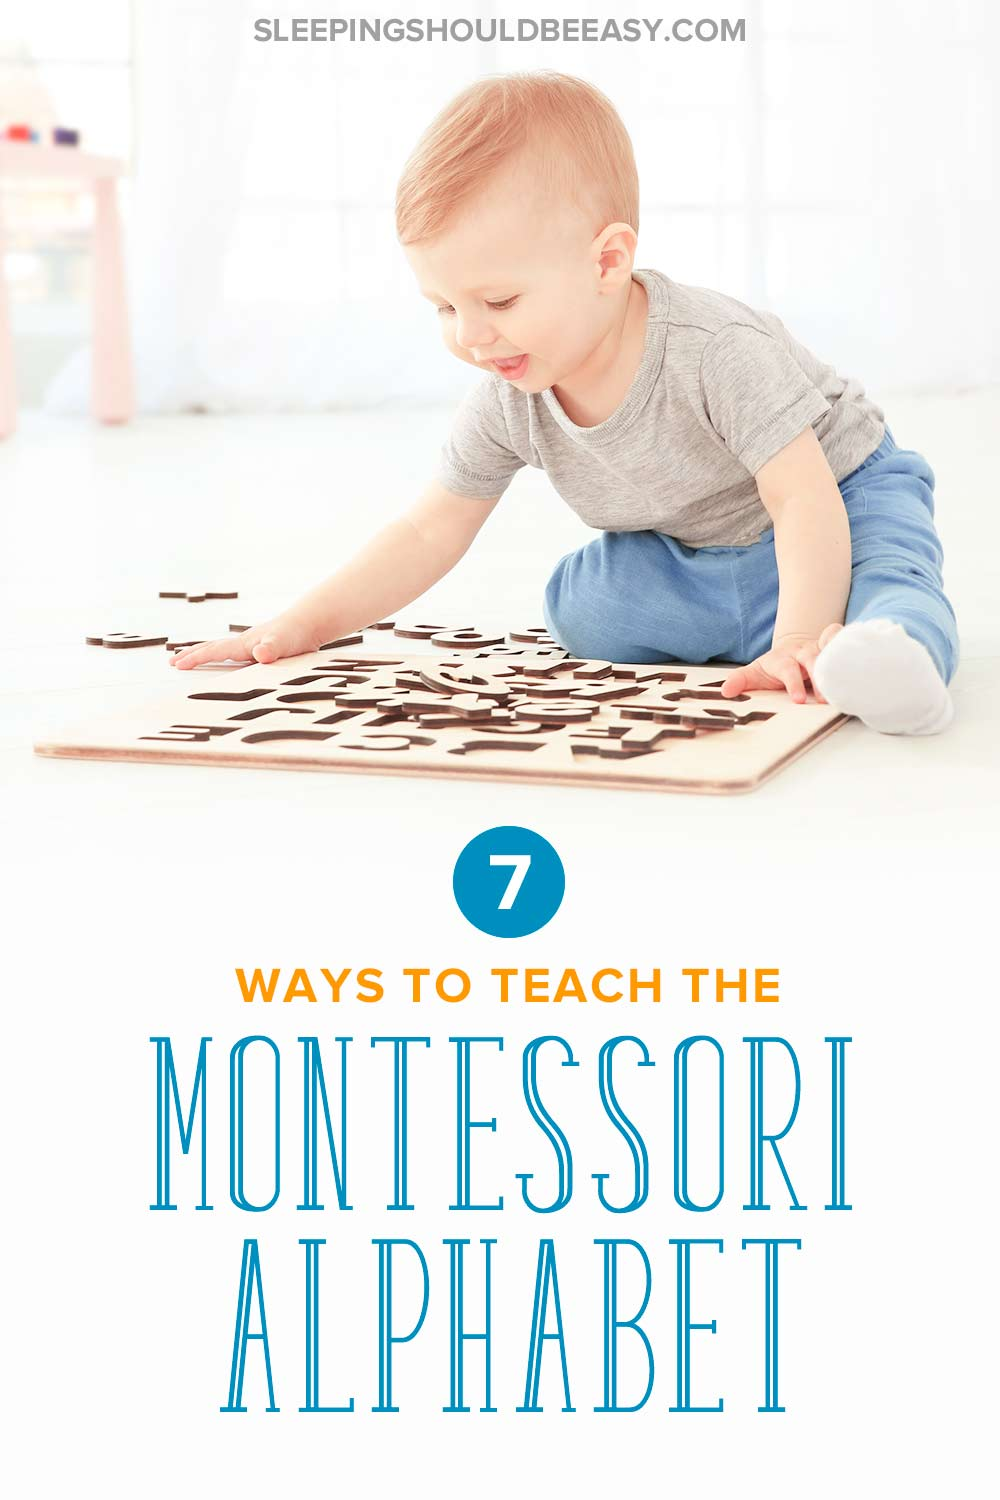 7 ways to teach the Montessori alphabet